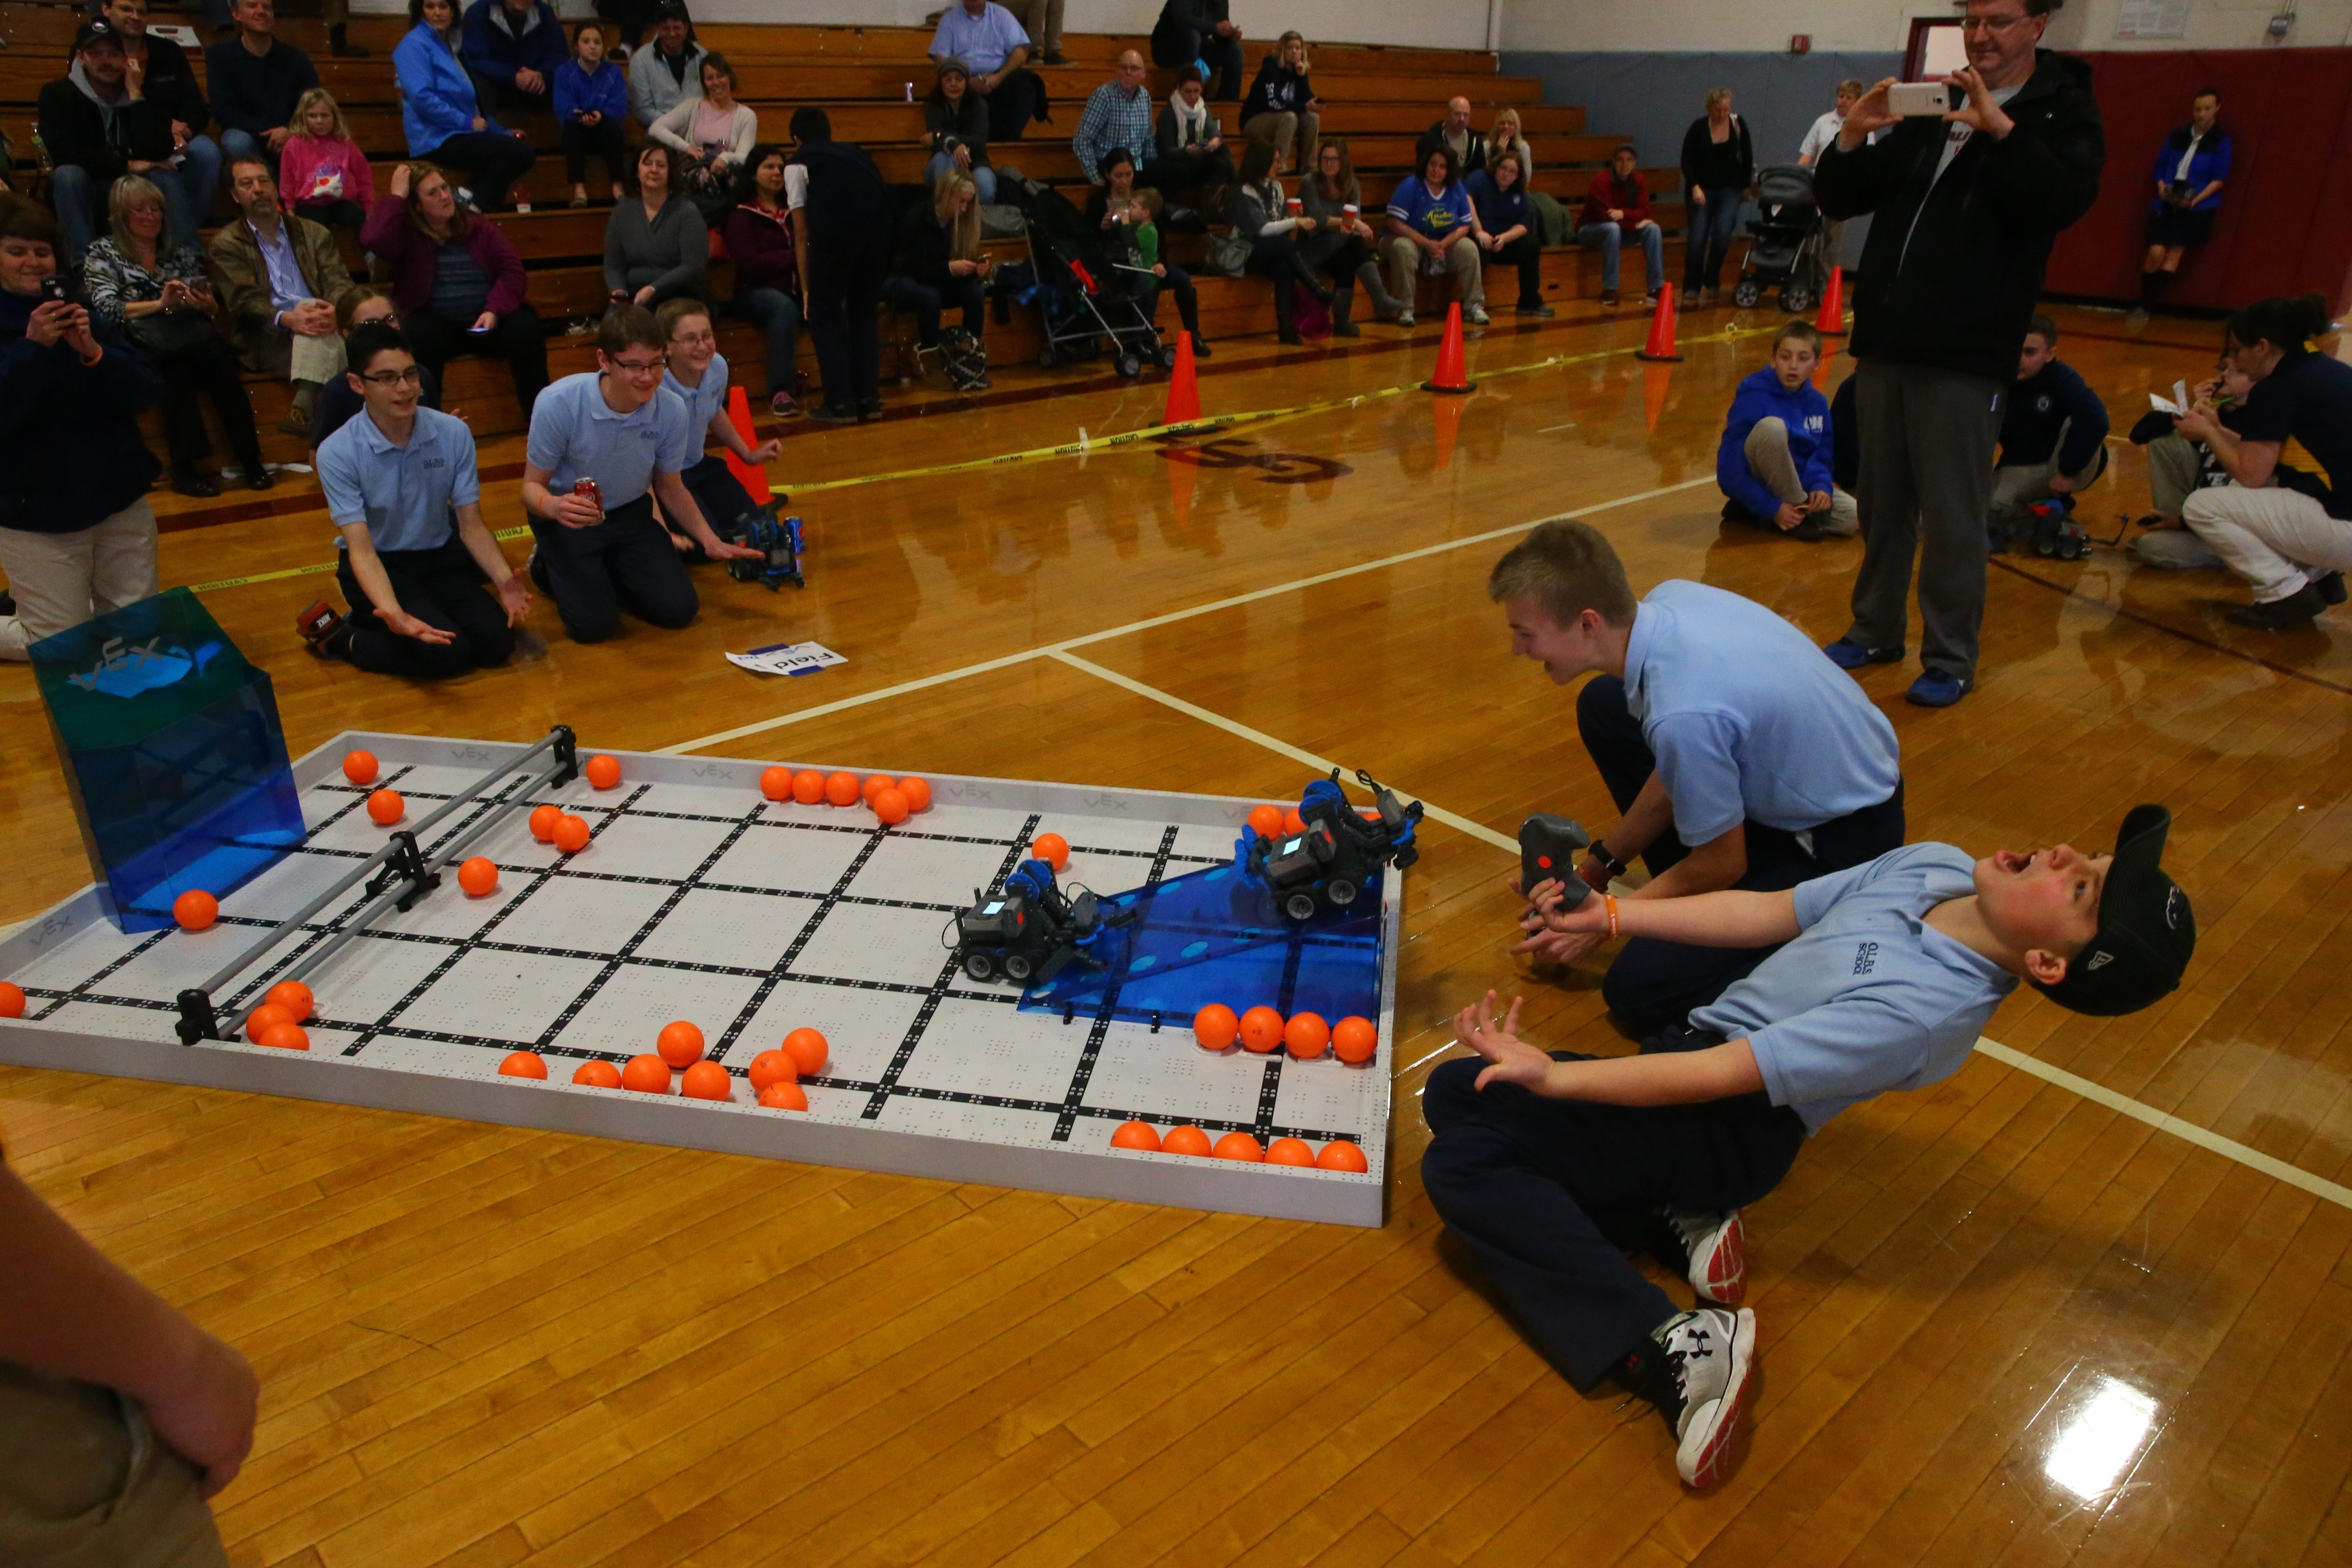 Jake Sacilowski, top right, and Matthew Walter, bottom, of Our Lady the Blessed Sacrament robotics team  react as they compete in Diocese of Buffalo's Xstream games and expo at St. Joseph Collegiate Institute Sunday.